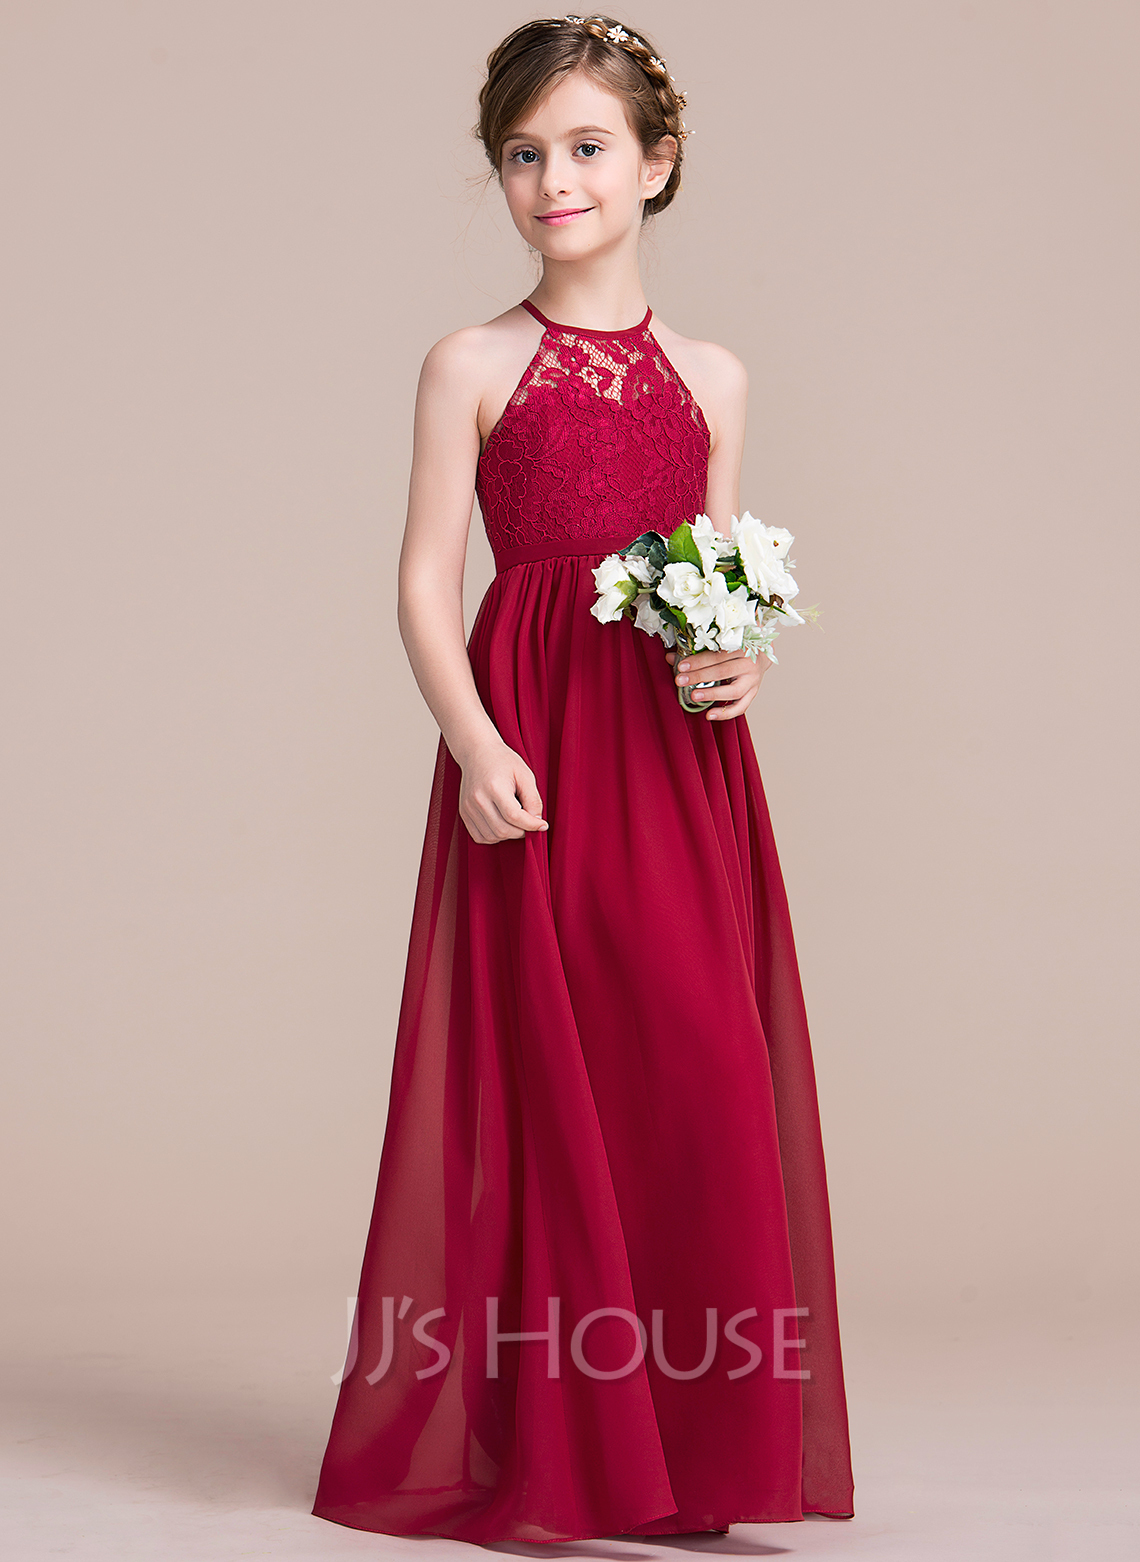 Find affordable flower girl dresses jjshouse a lineprincess floor length flower girl dress chiffonlace sleeveless izmirmasajfo Images